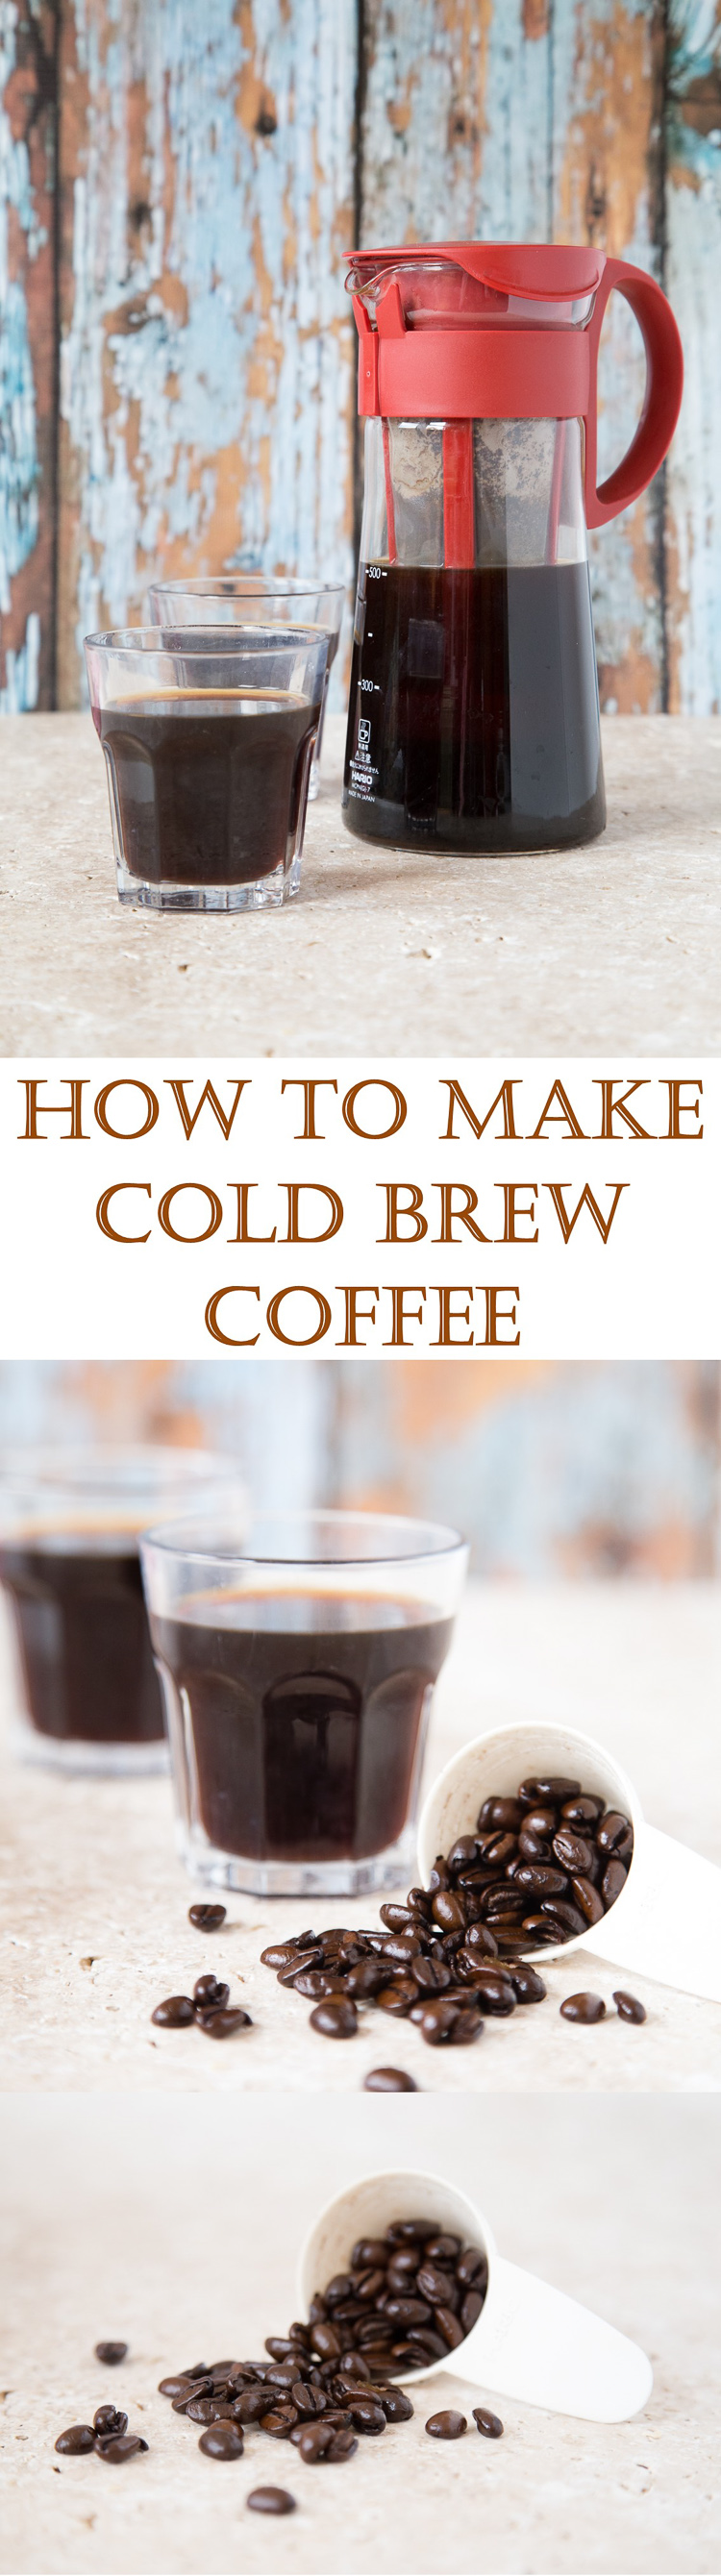 This easy to make cold brew coffee is the perfect base for making lots of delicious drinks and treats, like iced coffee, frappucinos, ice cream and sorbet. Learn how to make the perfect cold brew coffee with this simple method | Fuss Free Flavours